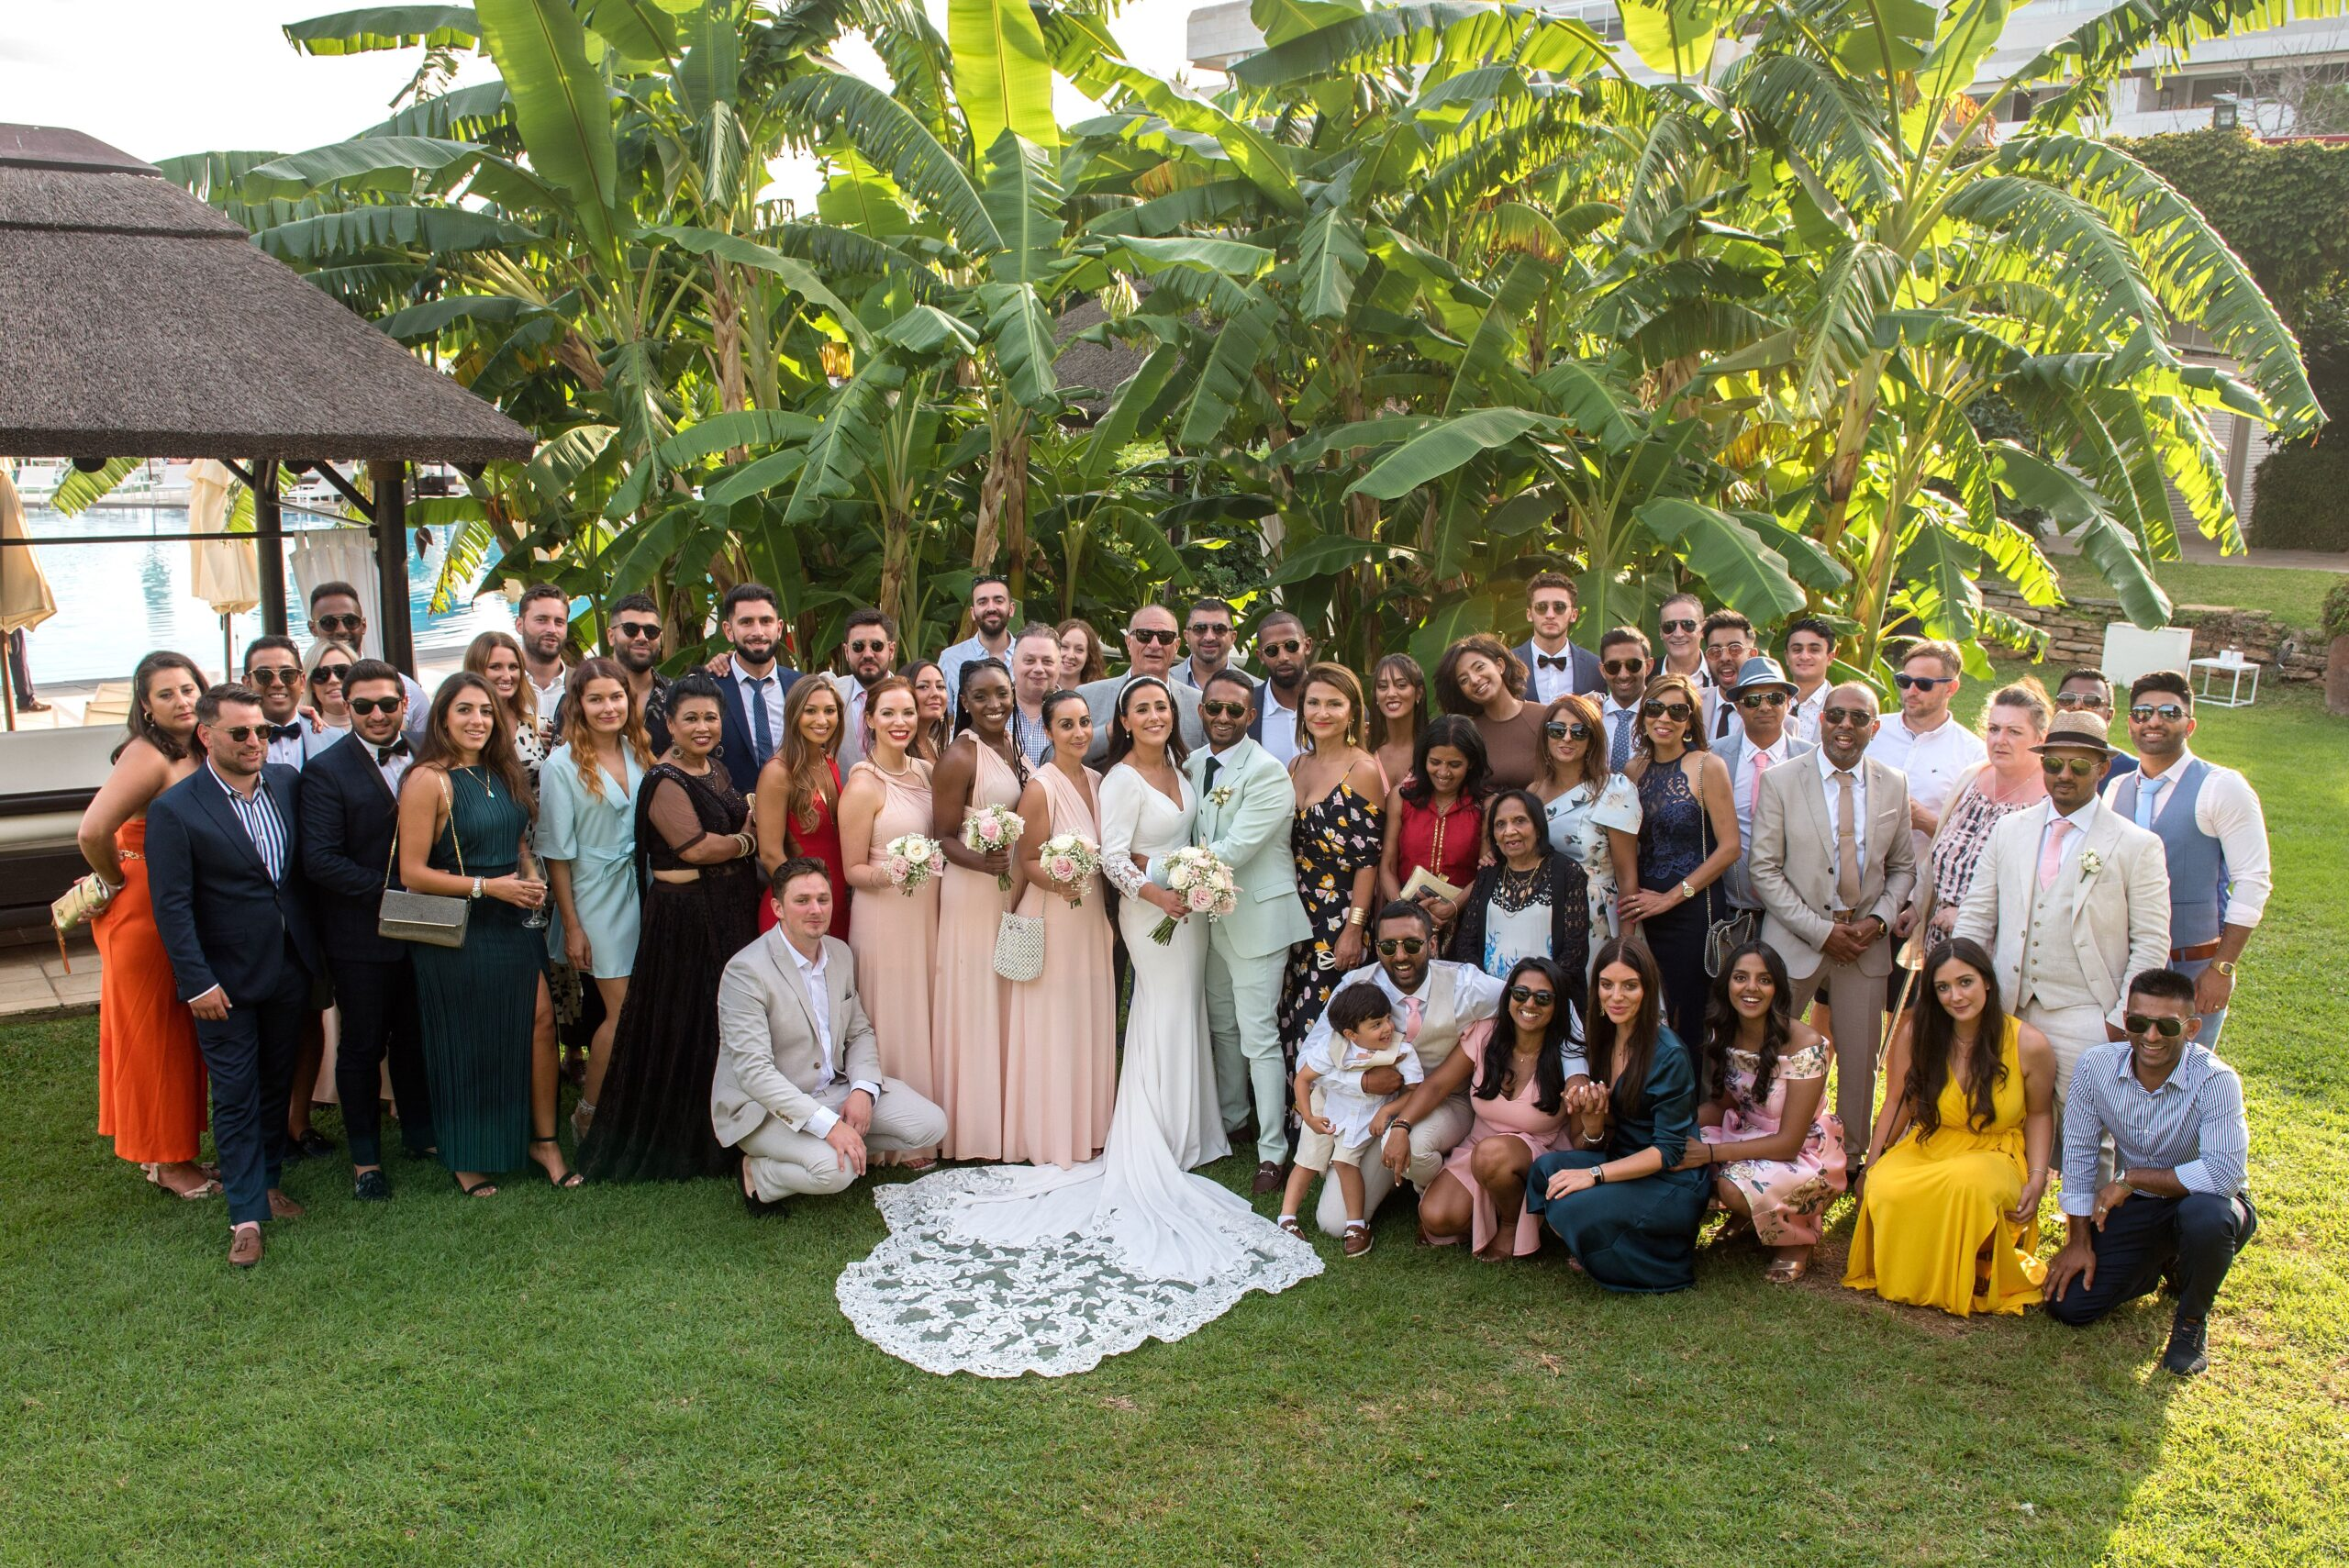 The bridal party in the grounds of the hotel